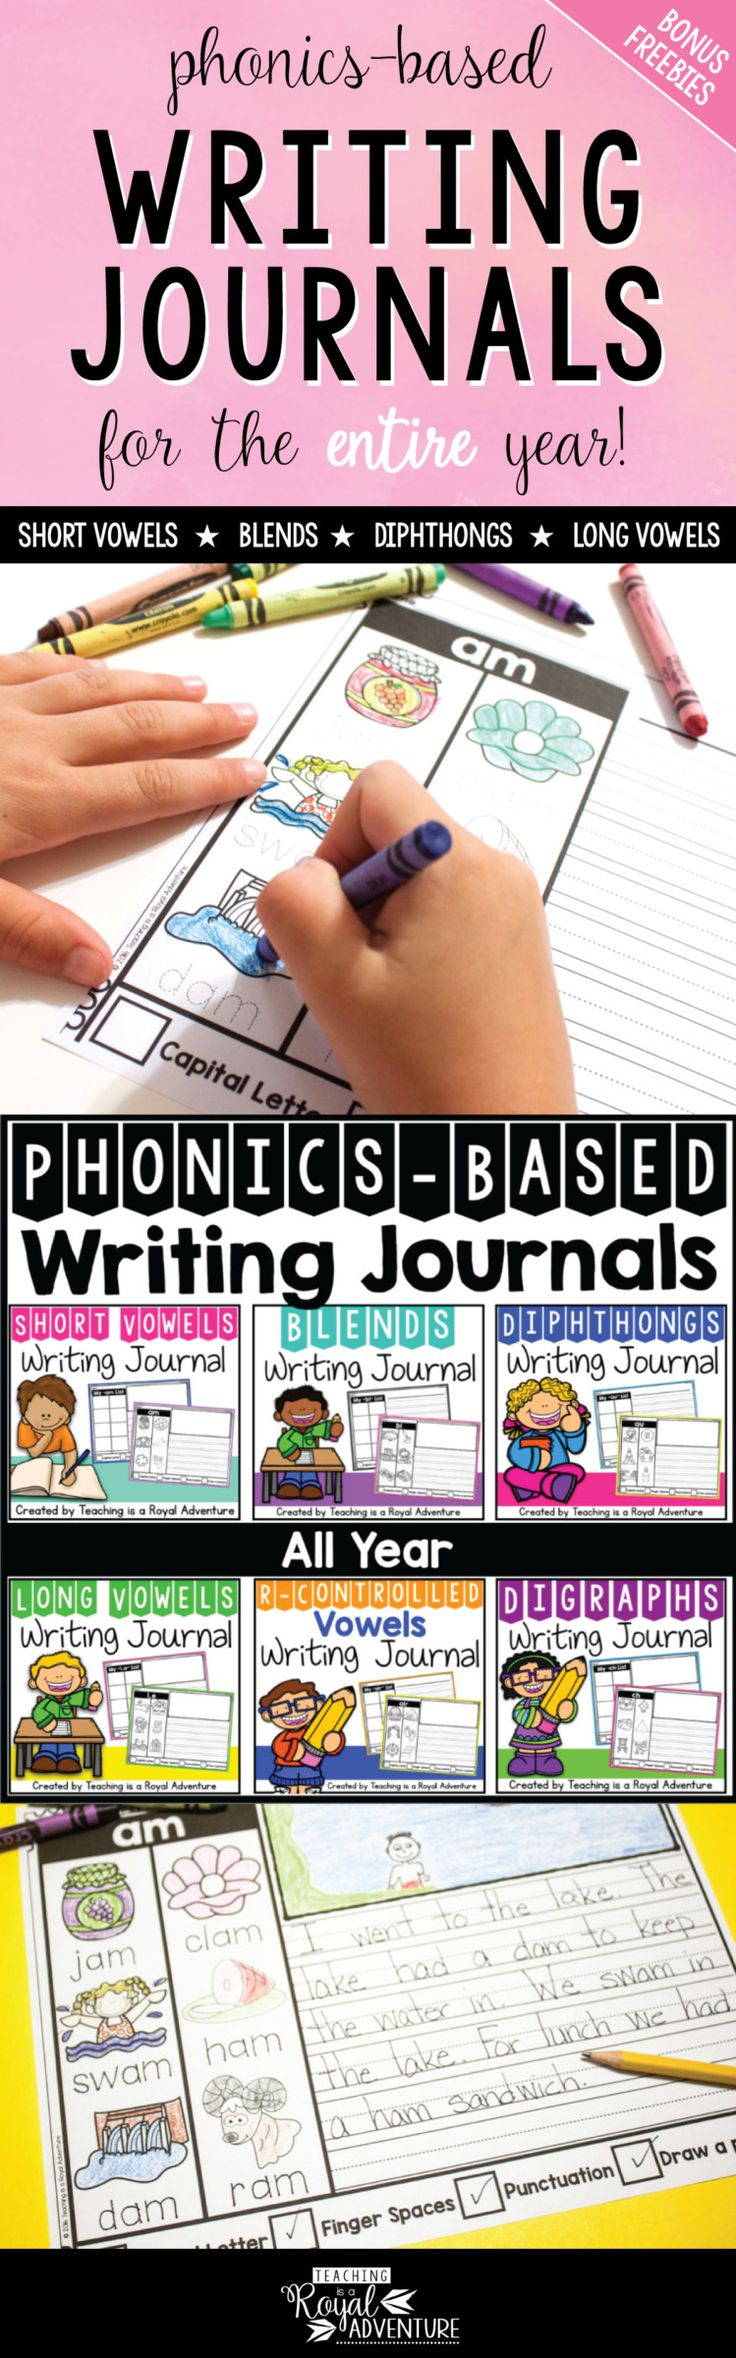 phonics essay Analytic phonics vs synthetic phonics how do the two strategies differ what makes synthetic phonics the faster, more effective approach.